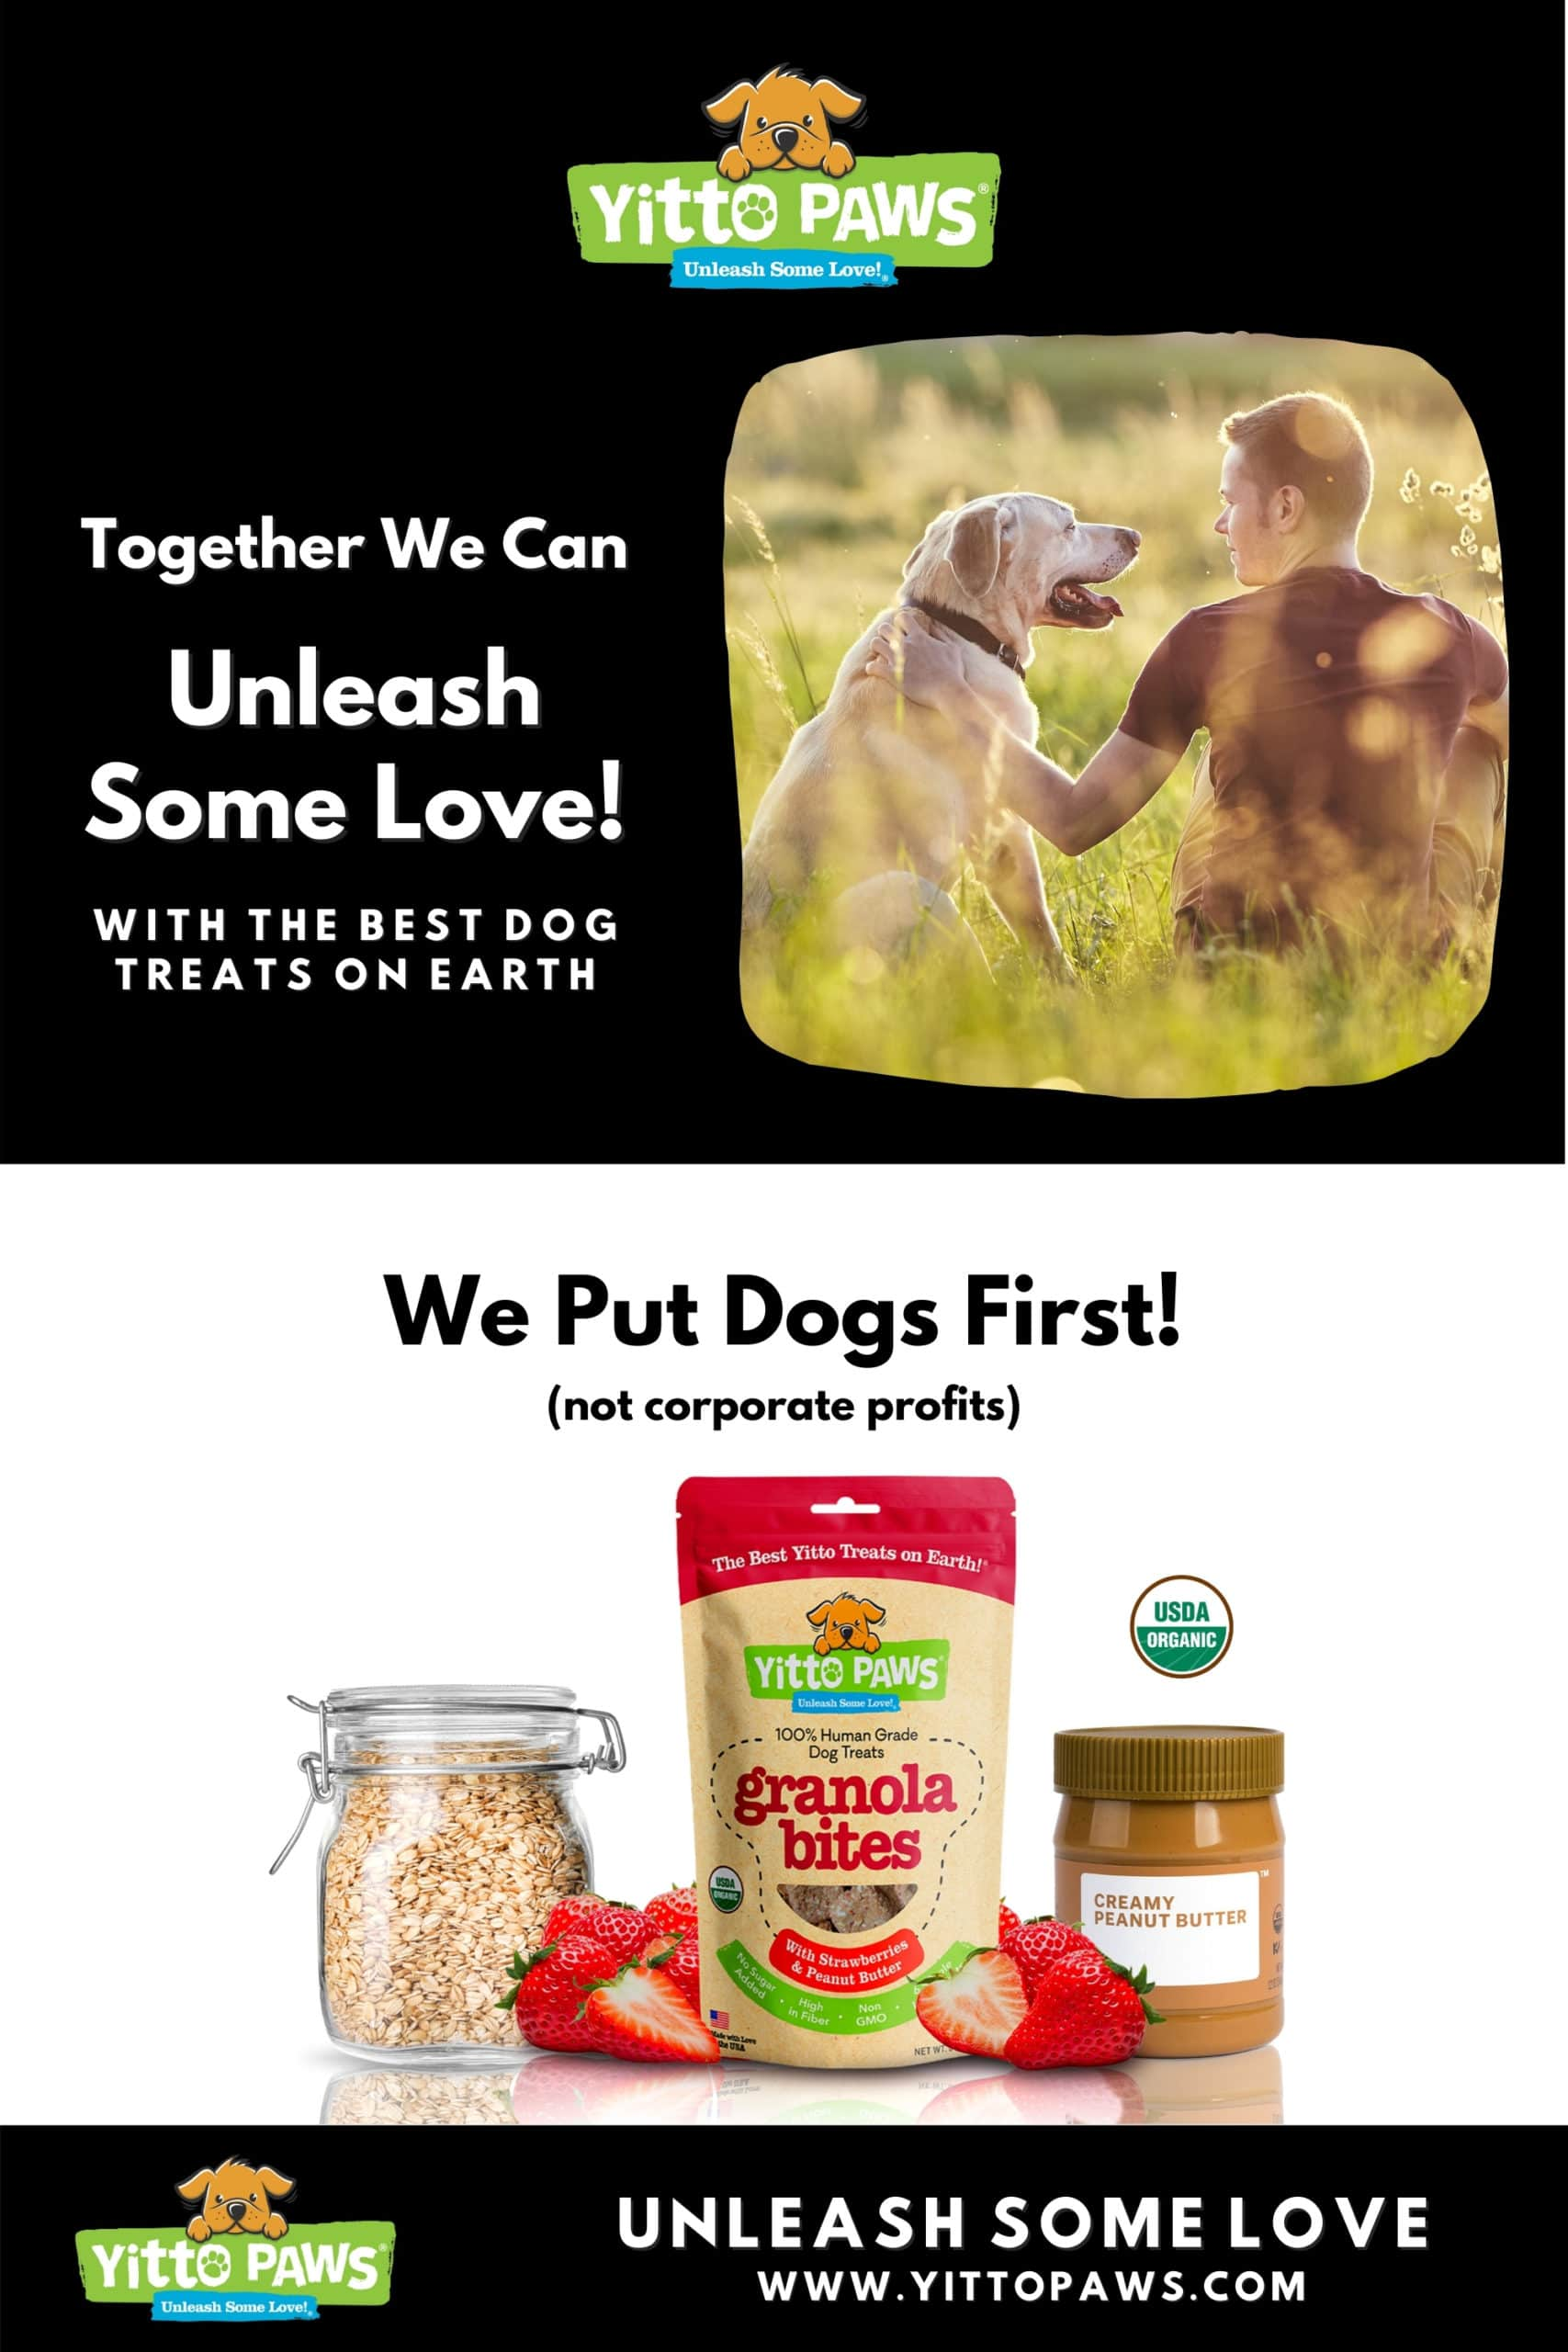 Together we can Unleash Some Love with the best dog treats on earth! Join our Mission and Let's Put Dogs First (not corporate profits).